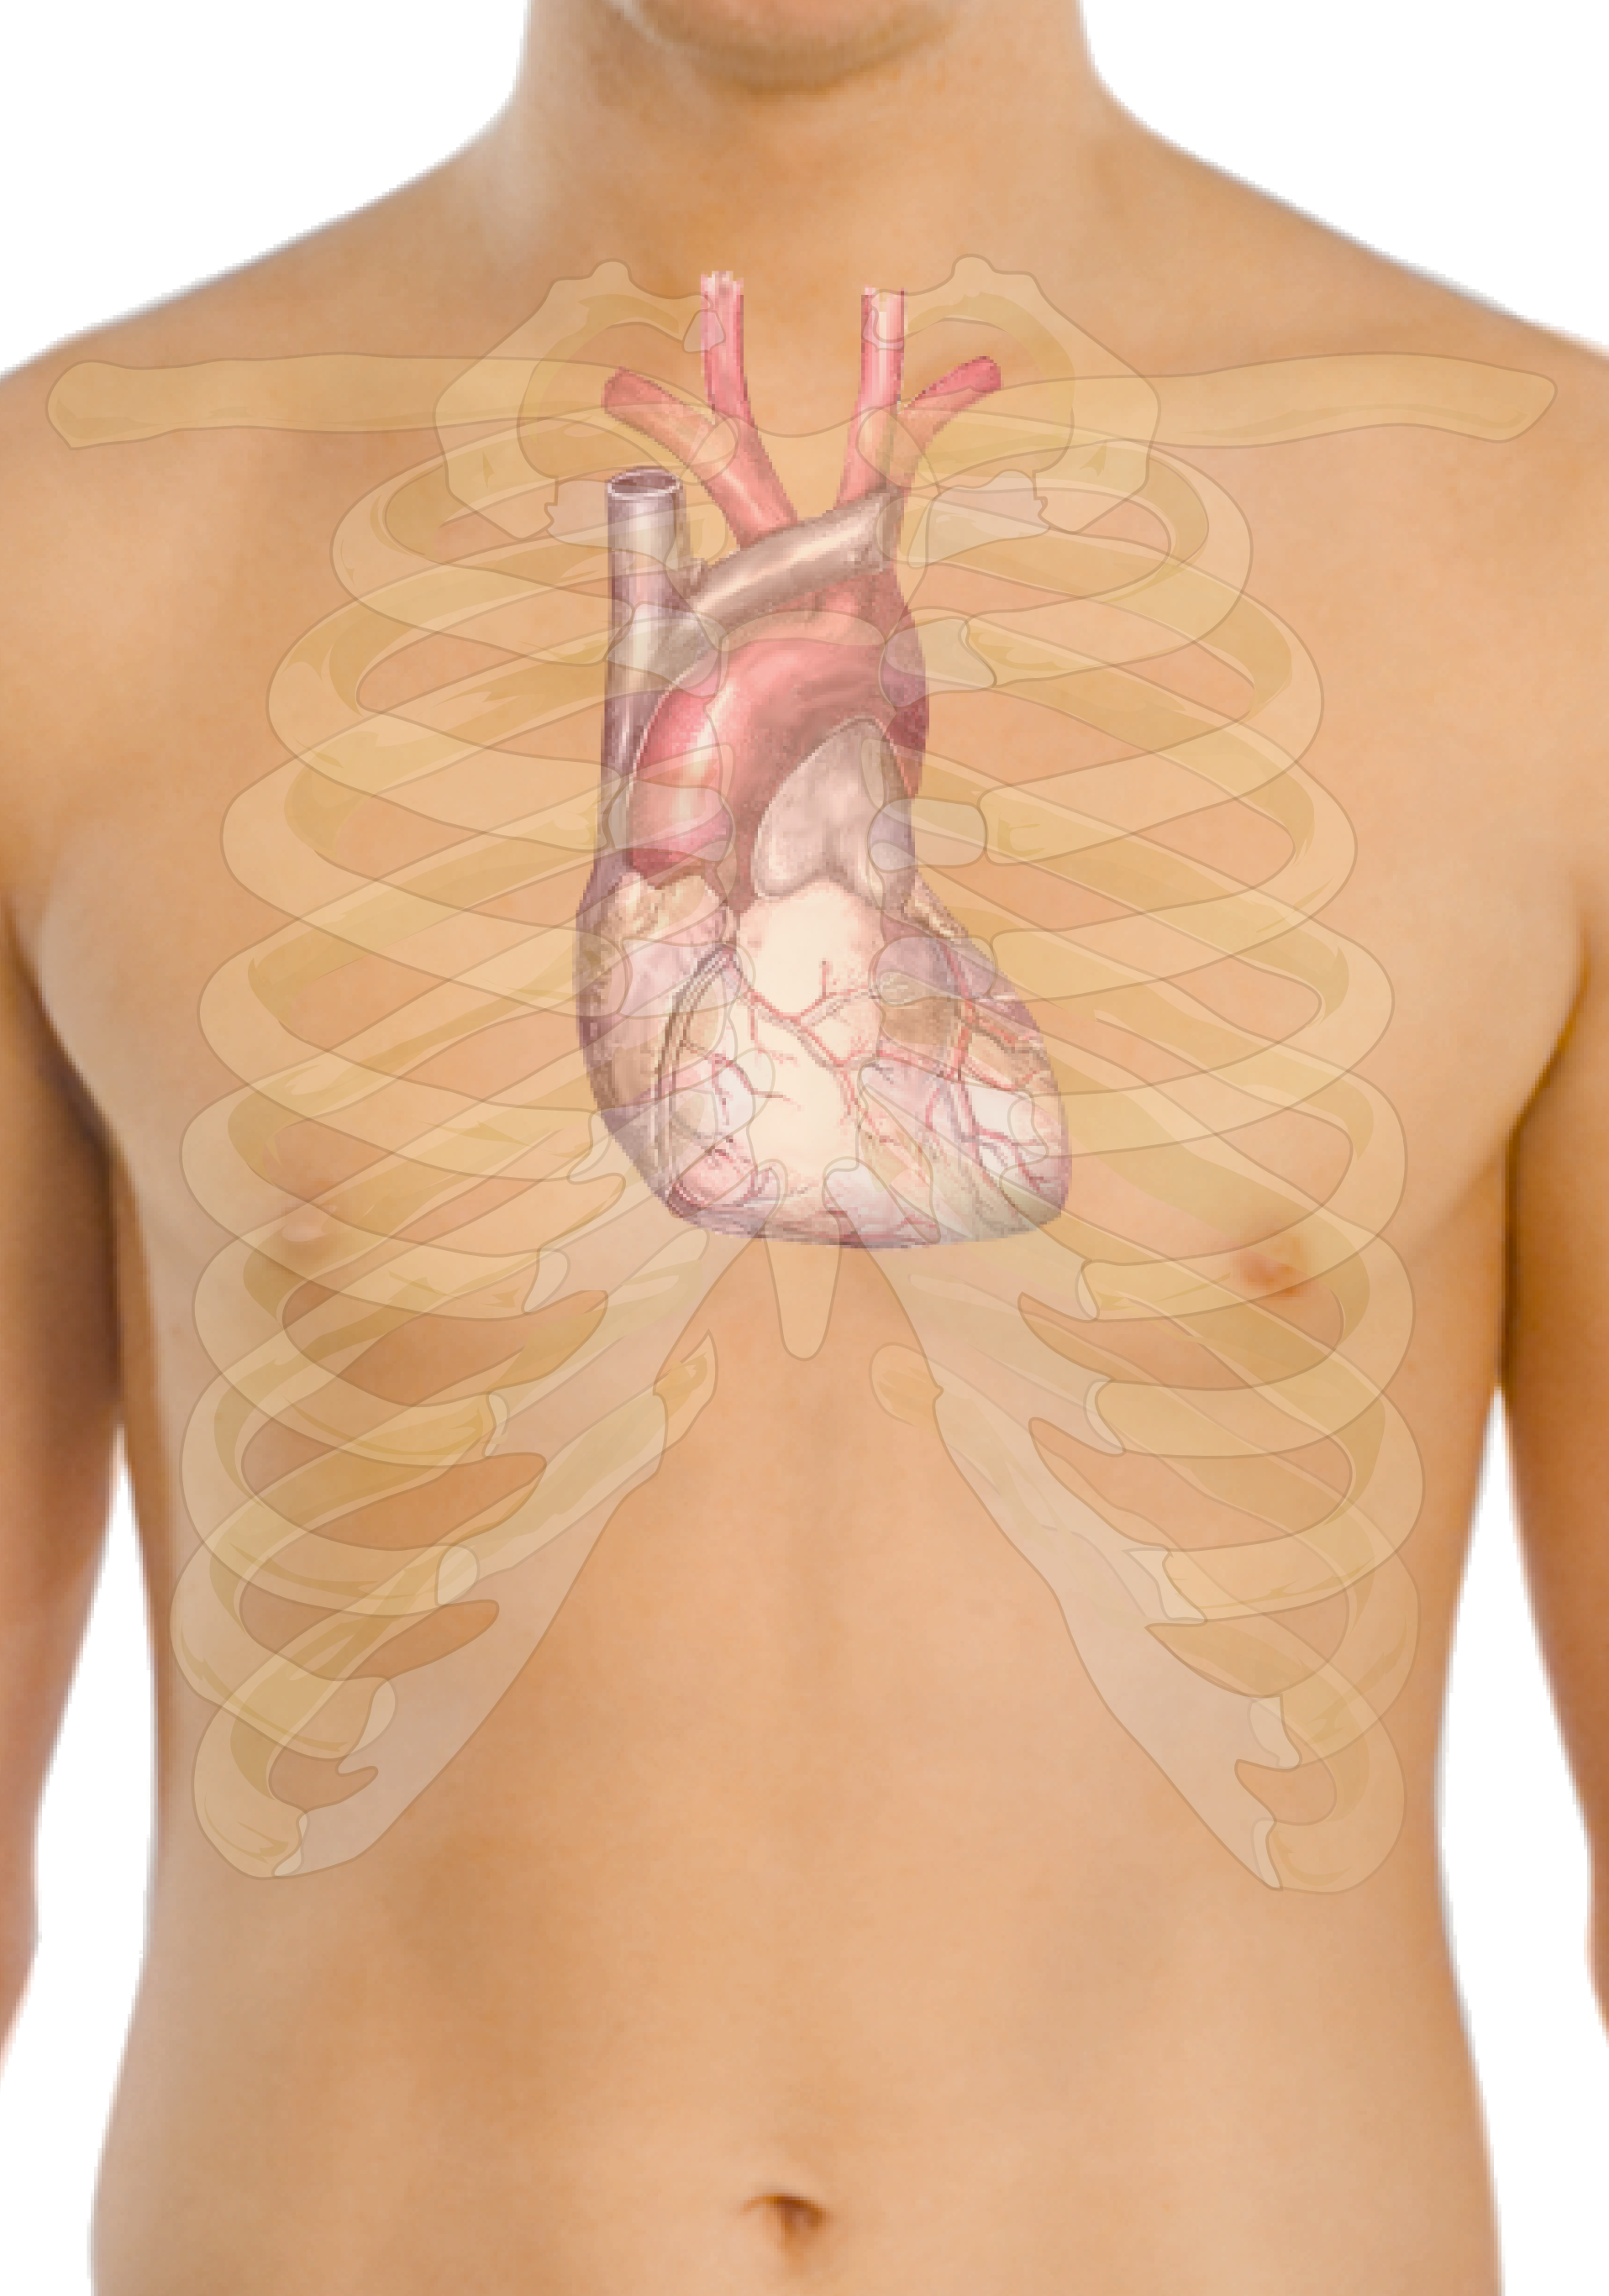 File:Surface anatomy of the heart.png - Wikimedia Commons